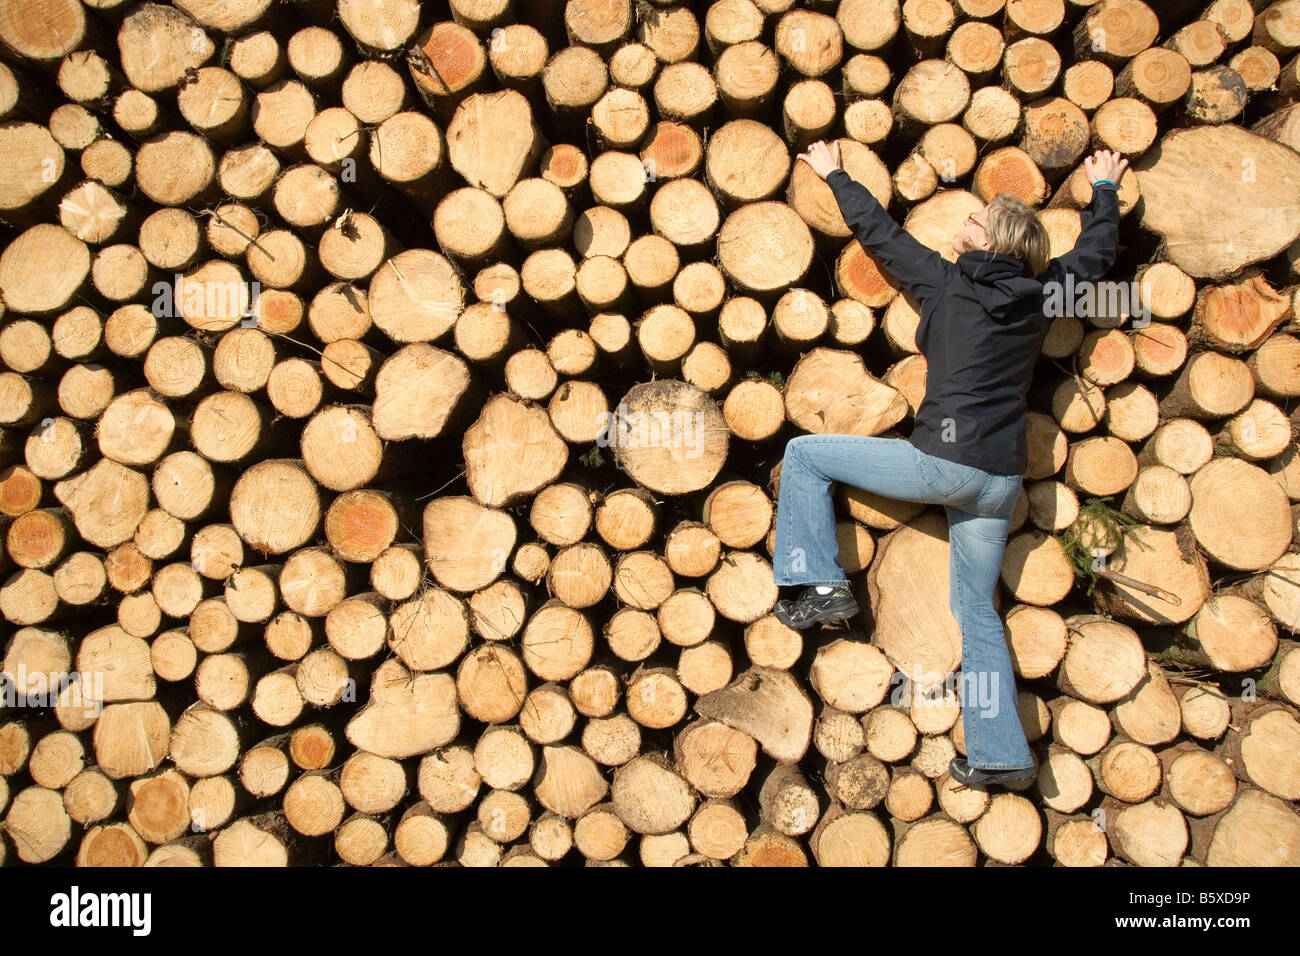 Woman climbing up une pile de grumes d'arbres Photo Stock